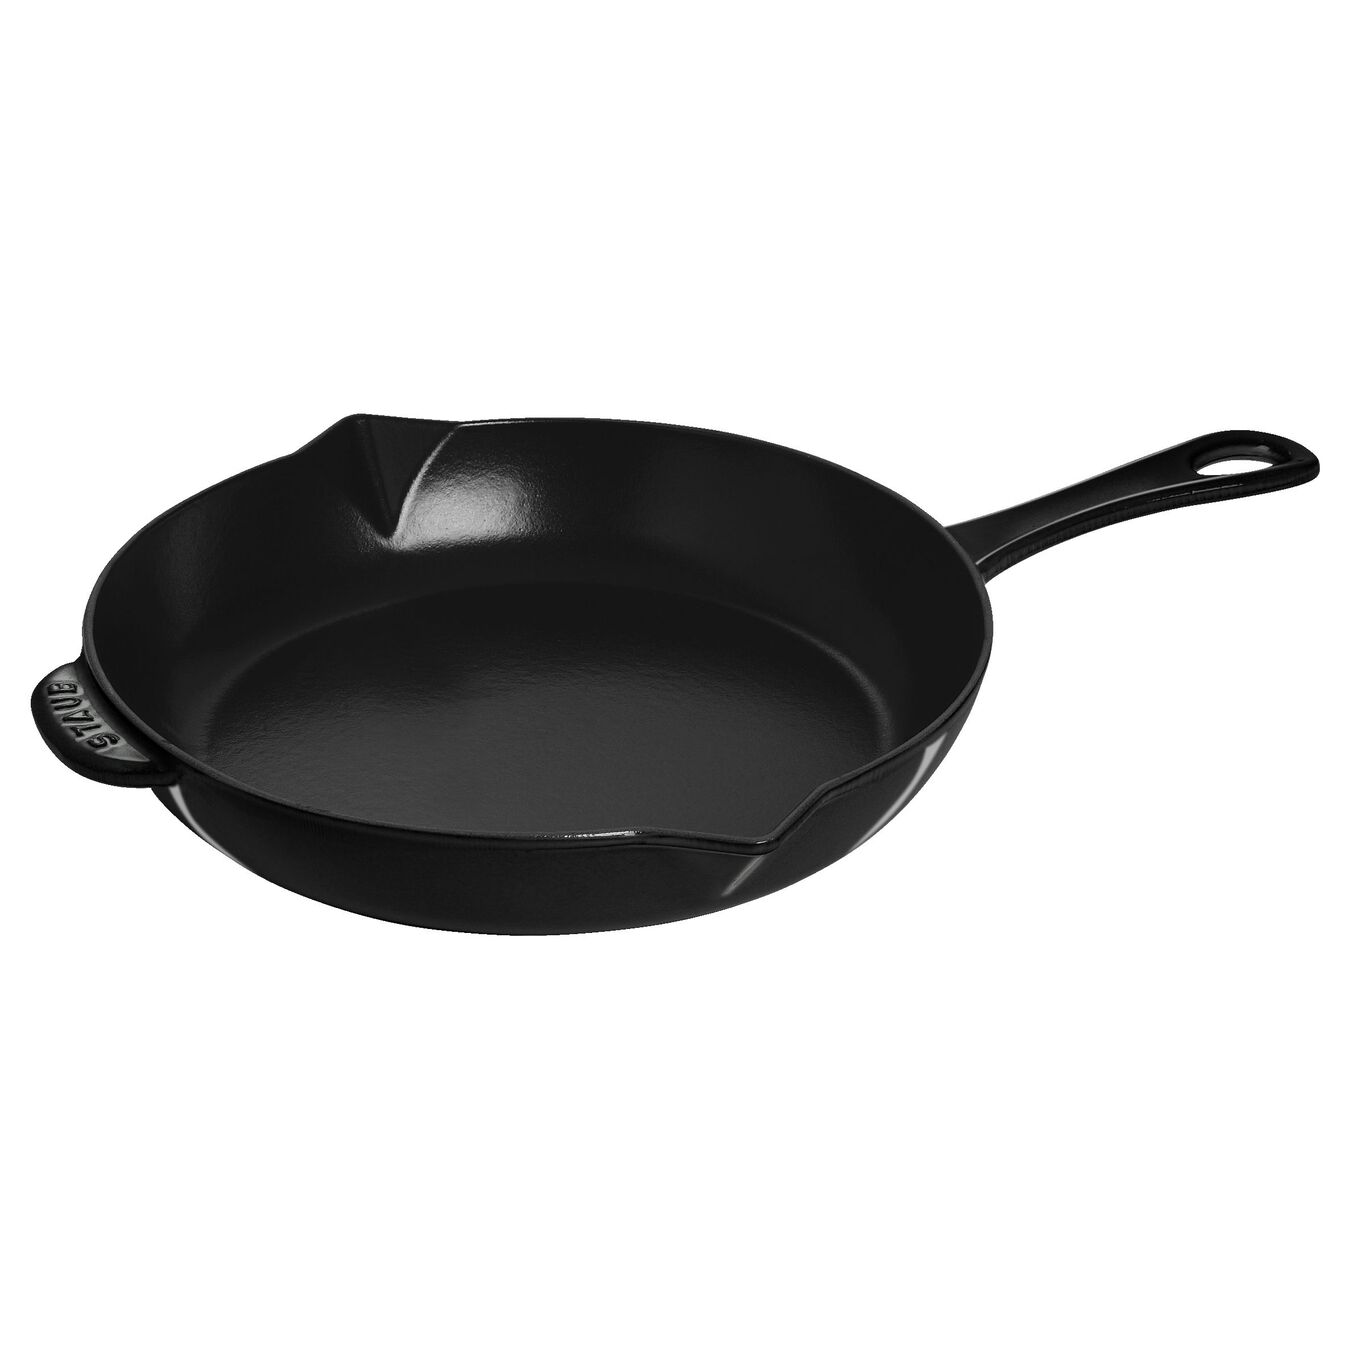 10-inch, Frying pan, Shiny black,,large 1